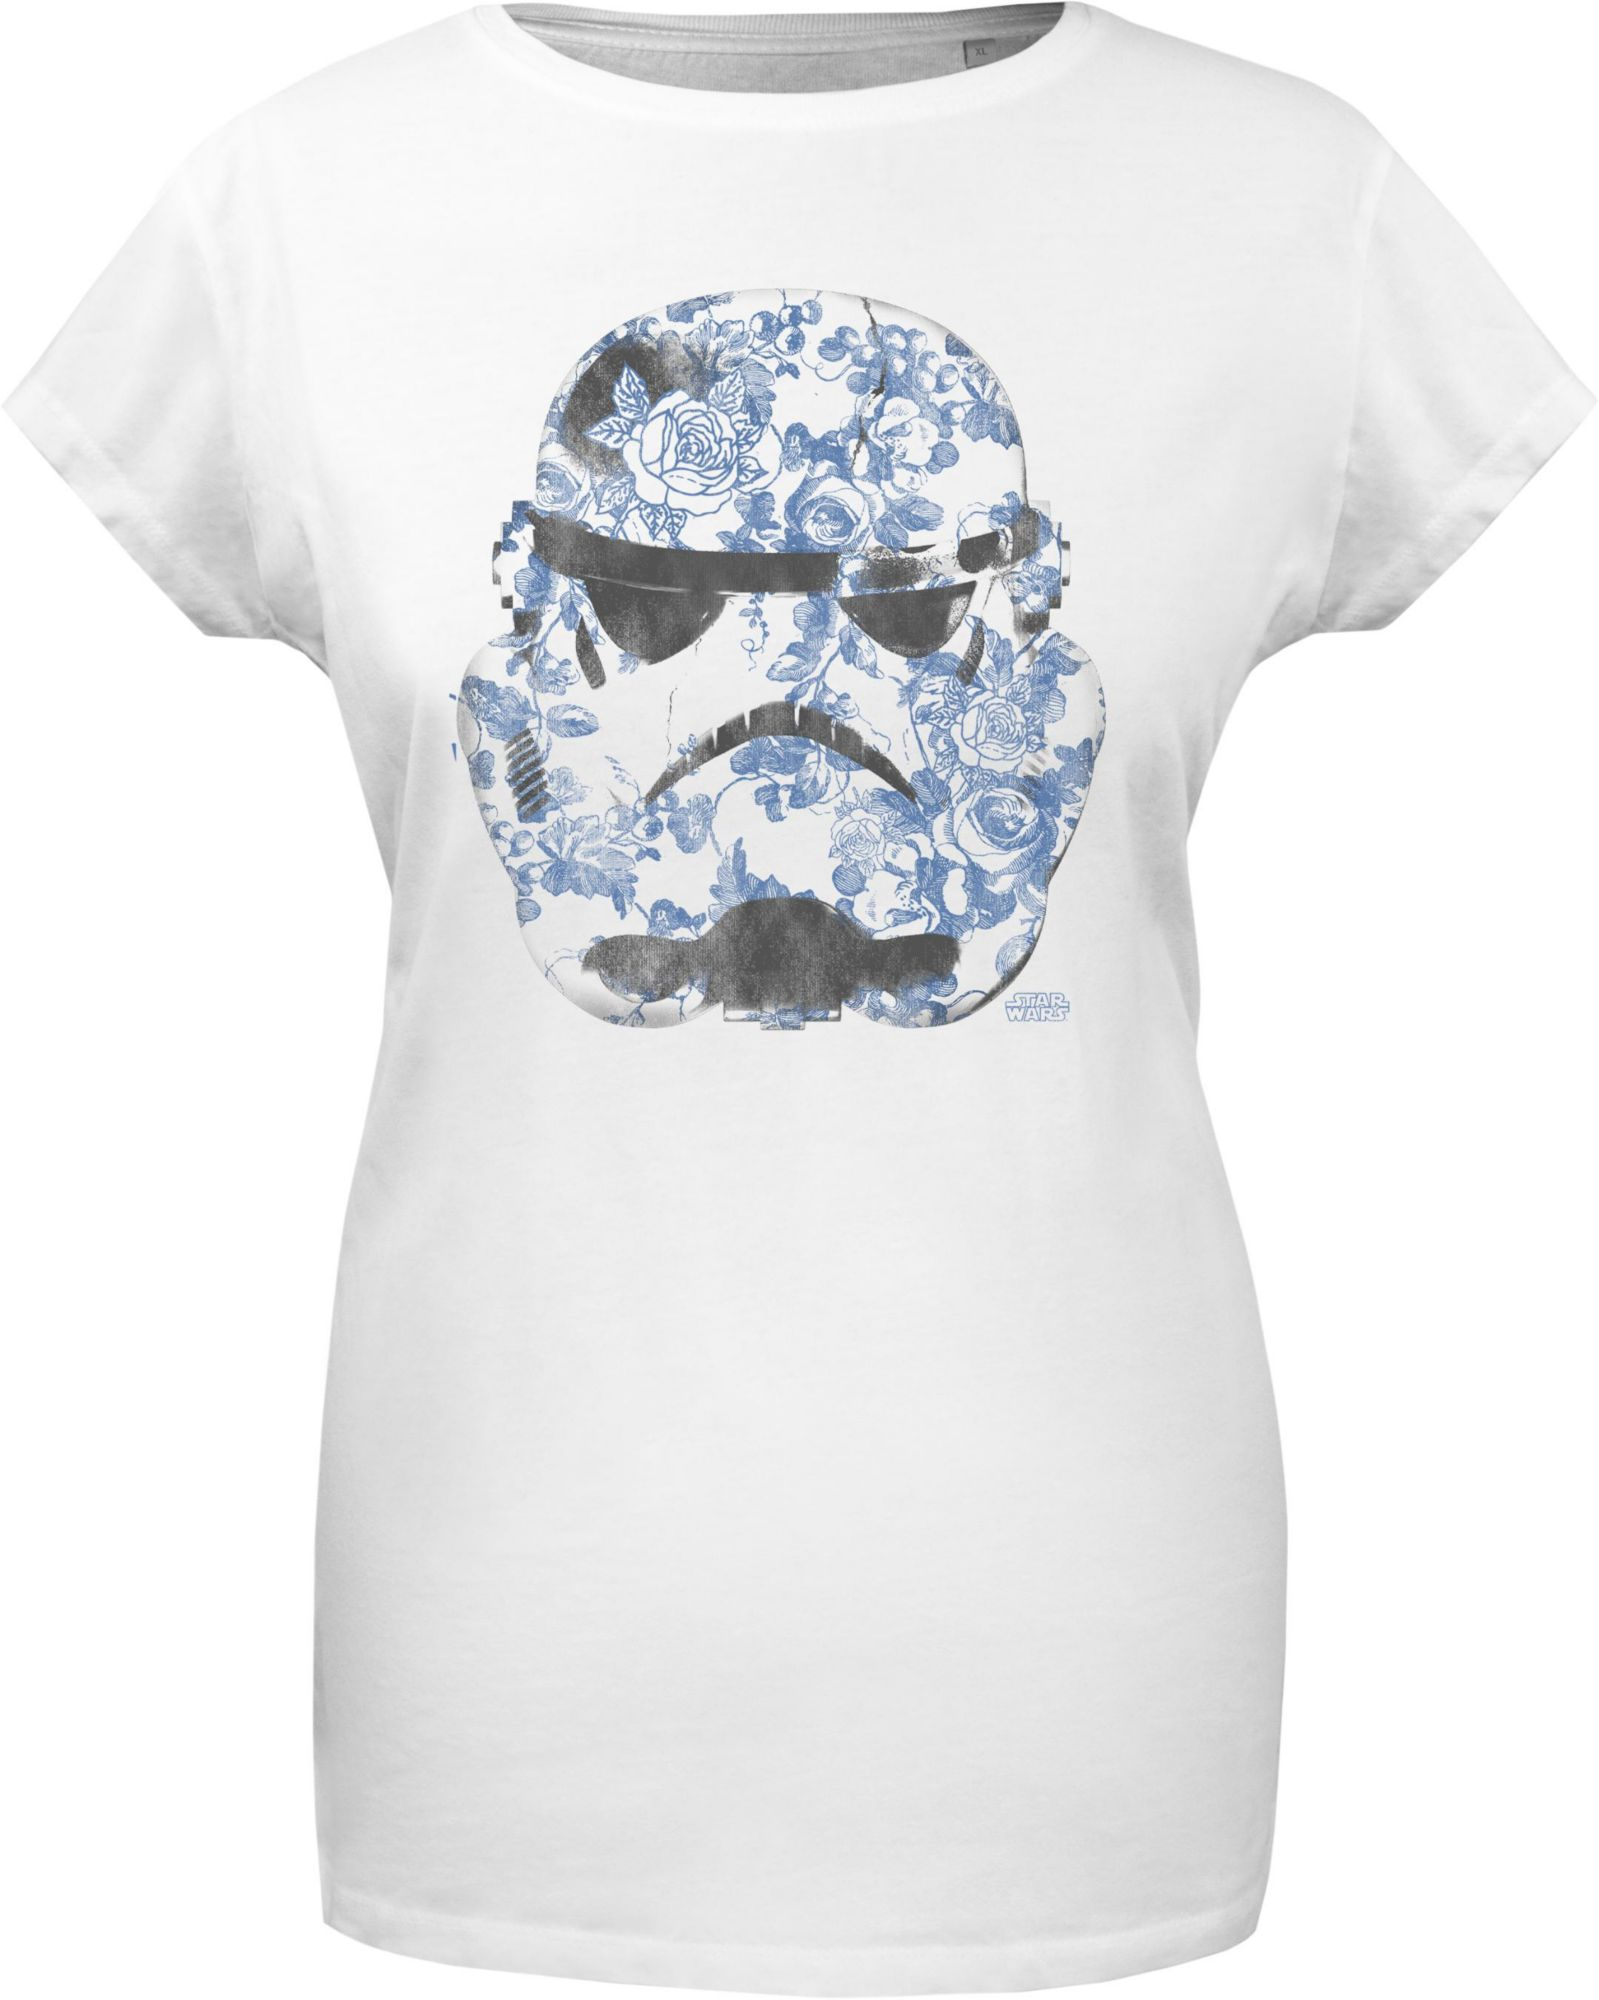 GOZOO Gozoo T-Shirt »Star Wars - Imperial Stormtrooper - Floral - Women«